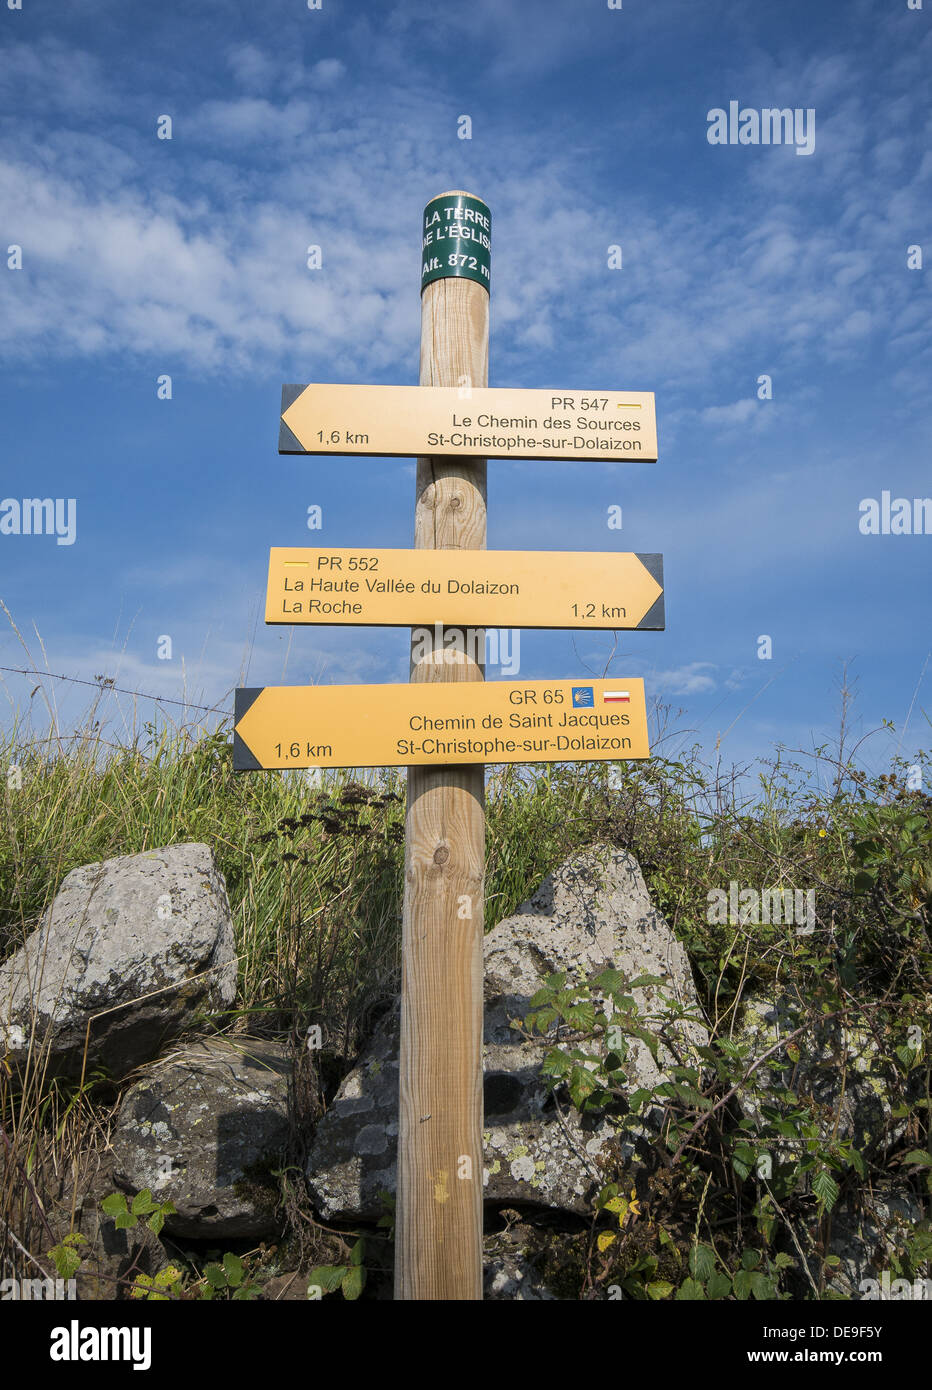 Yellow waymarker signpost on the GR65 walking route the Way of St James in the Auvergne region of France - Stock Image